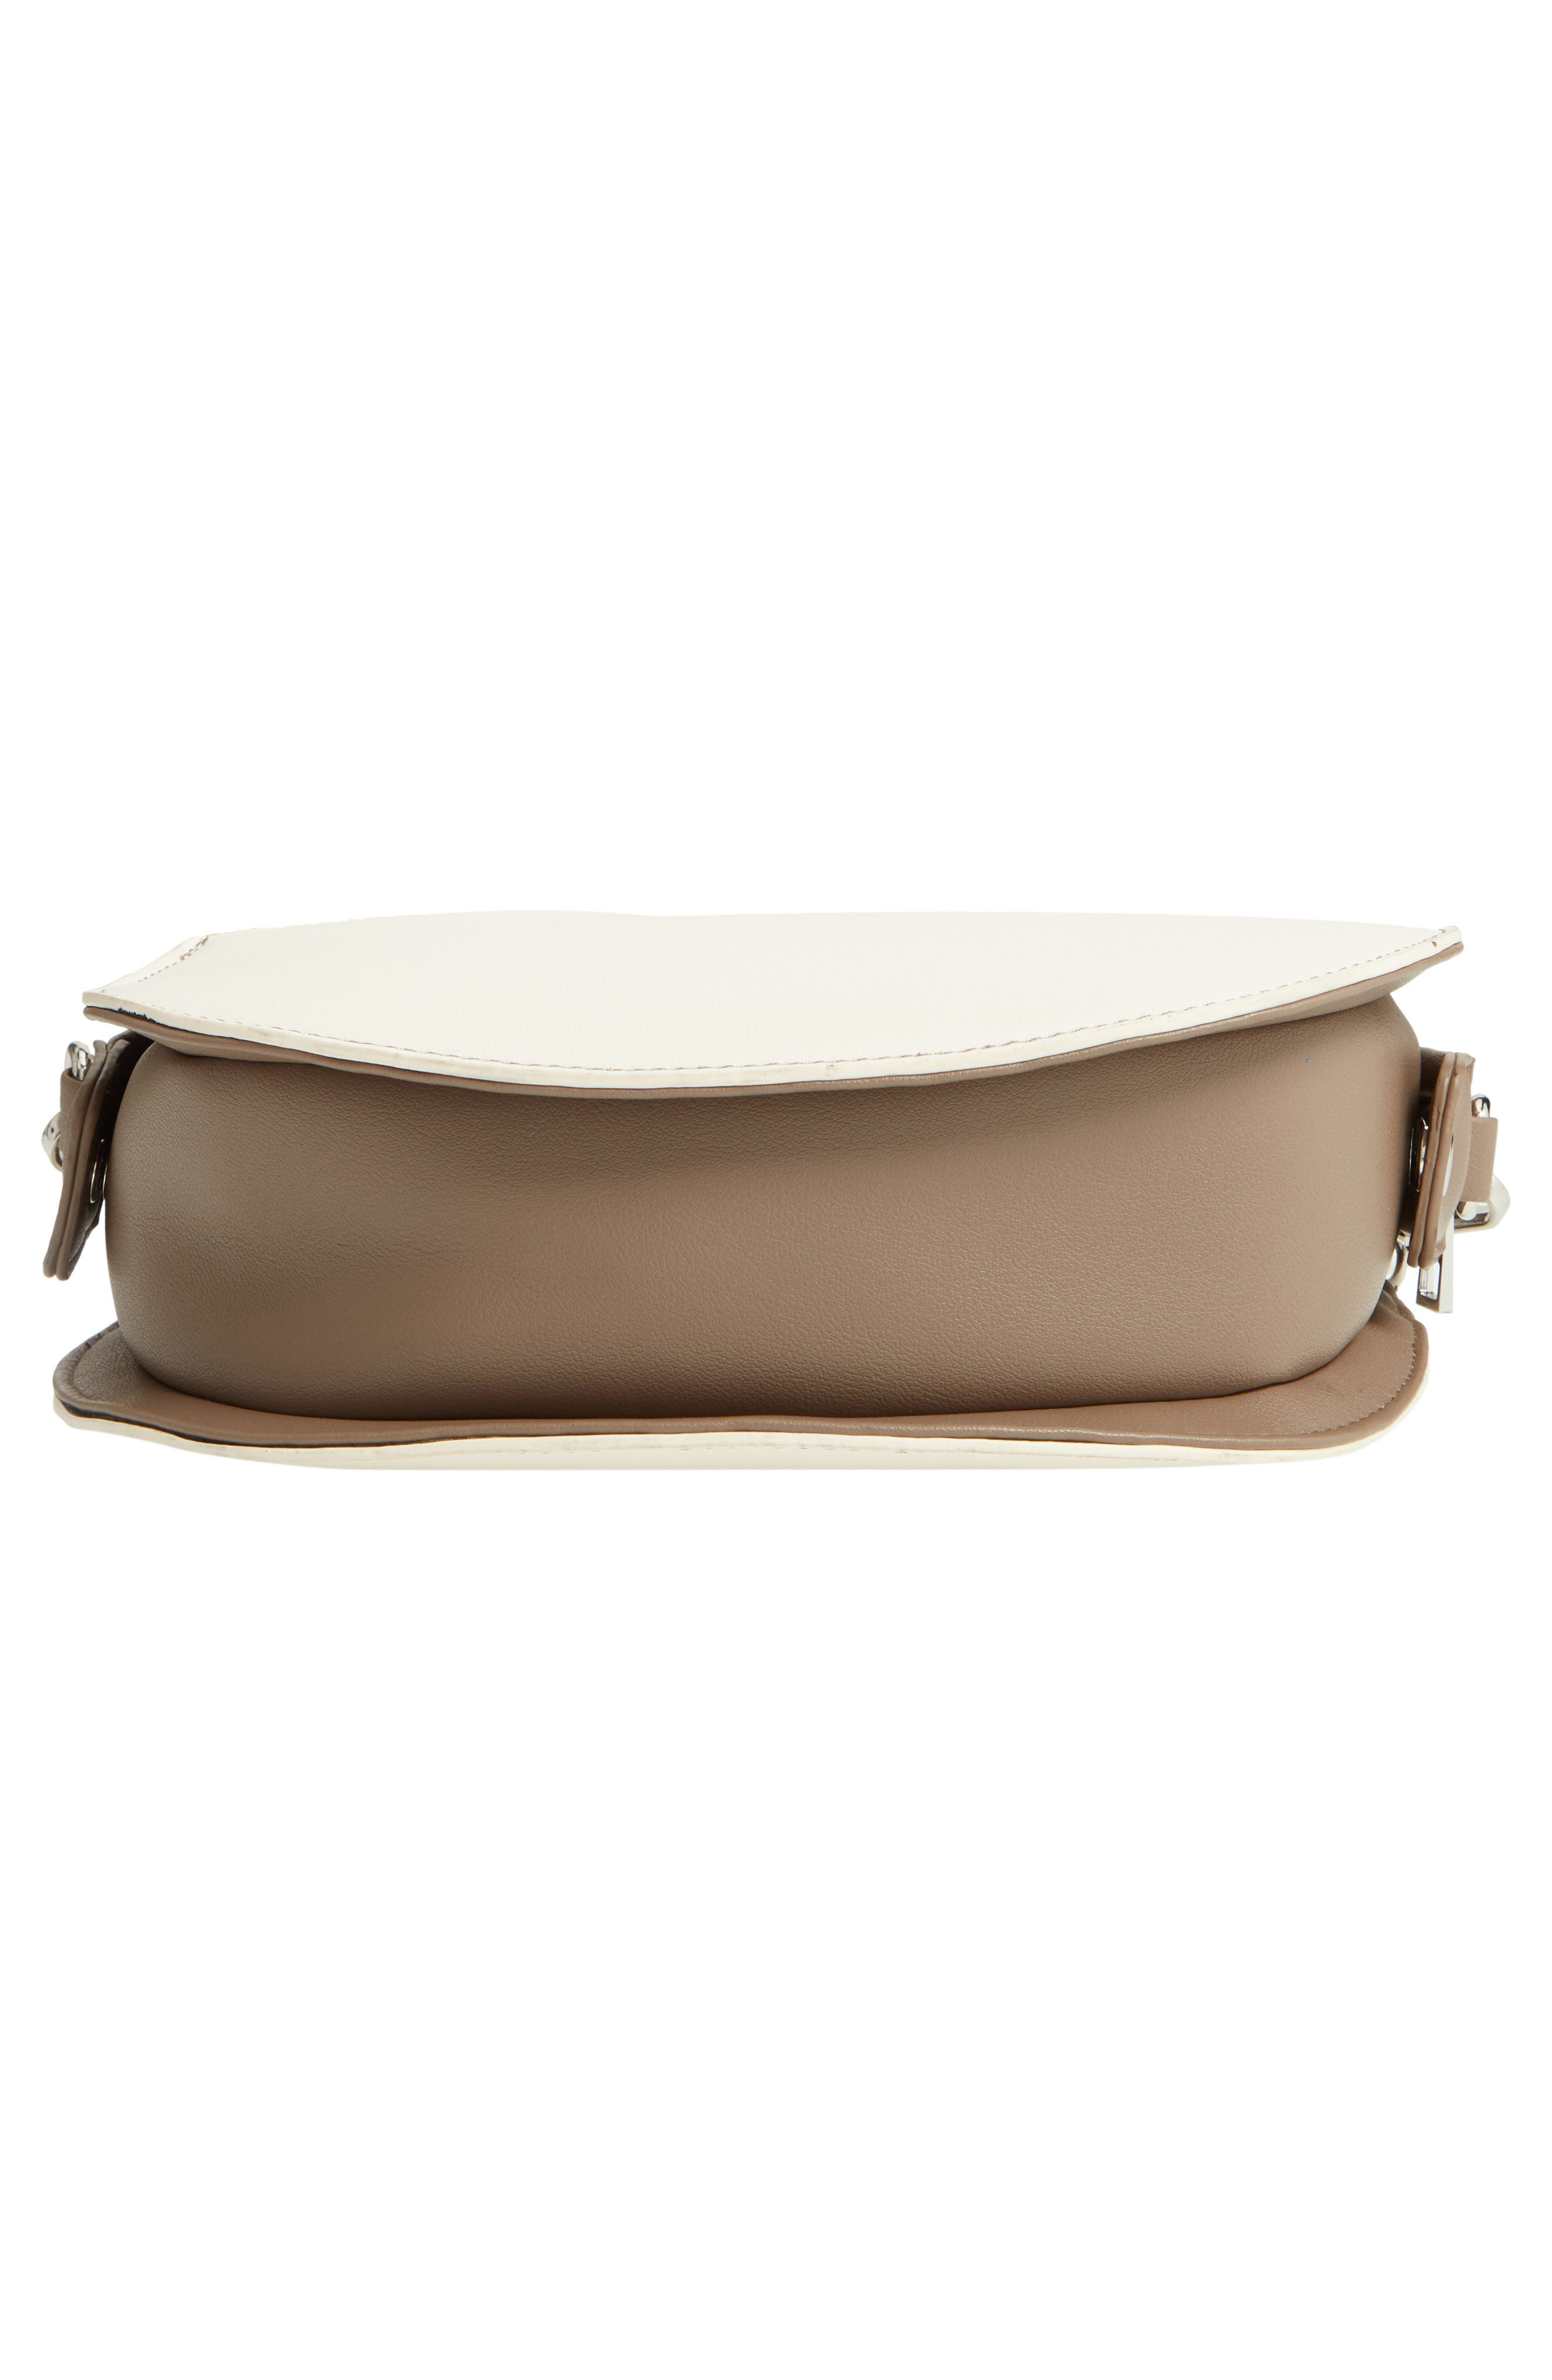 Two-Tone Faux Leather Oval Crossbody Bag,                             Alternate thumbnail 6, color,                             250